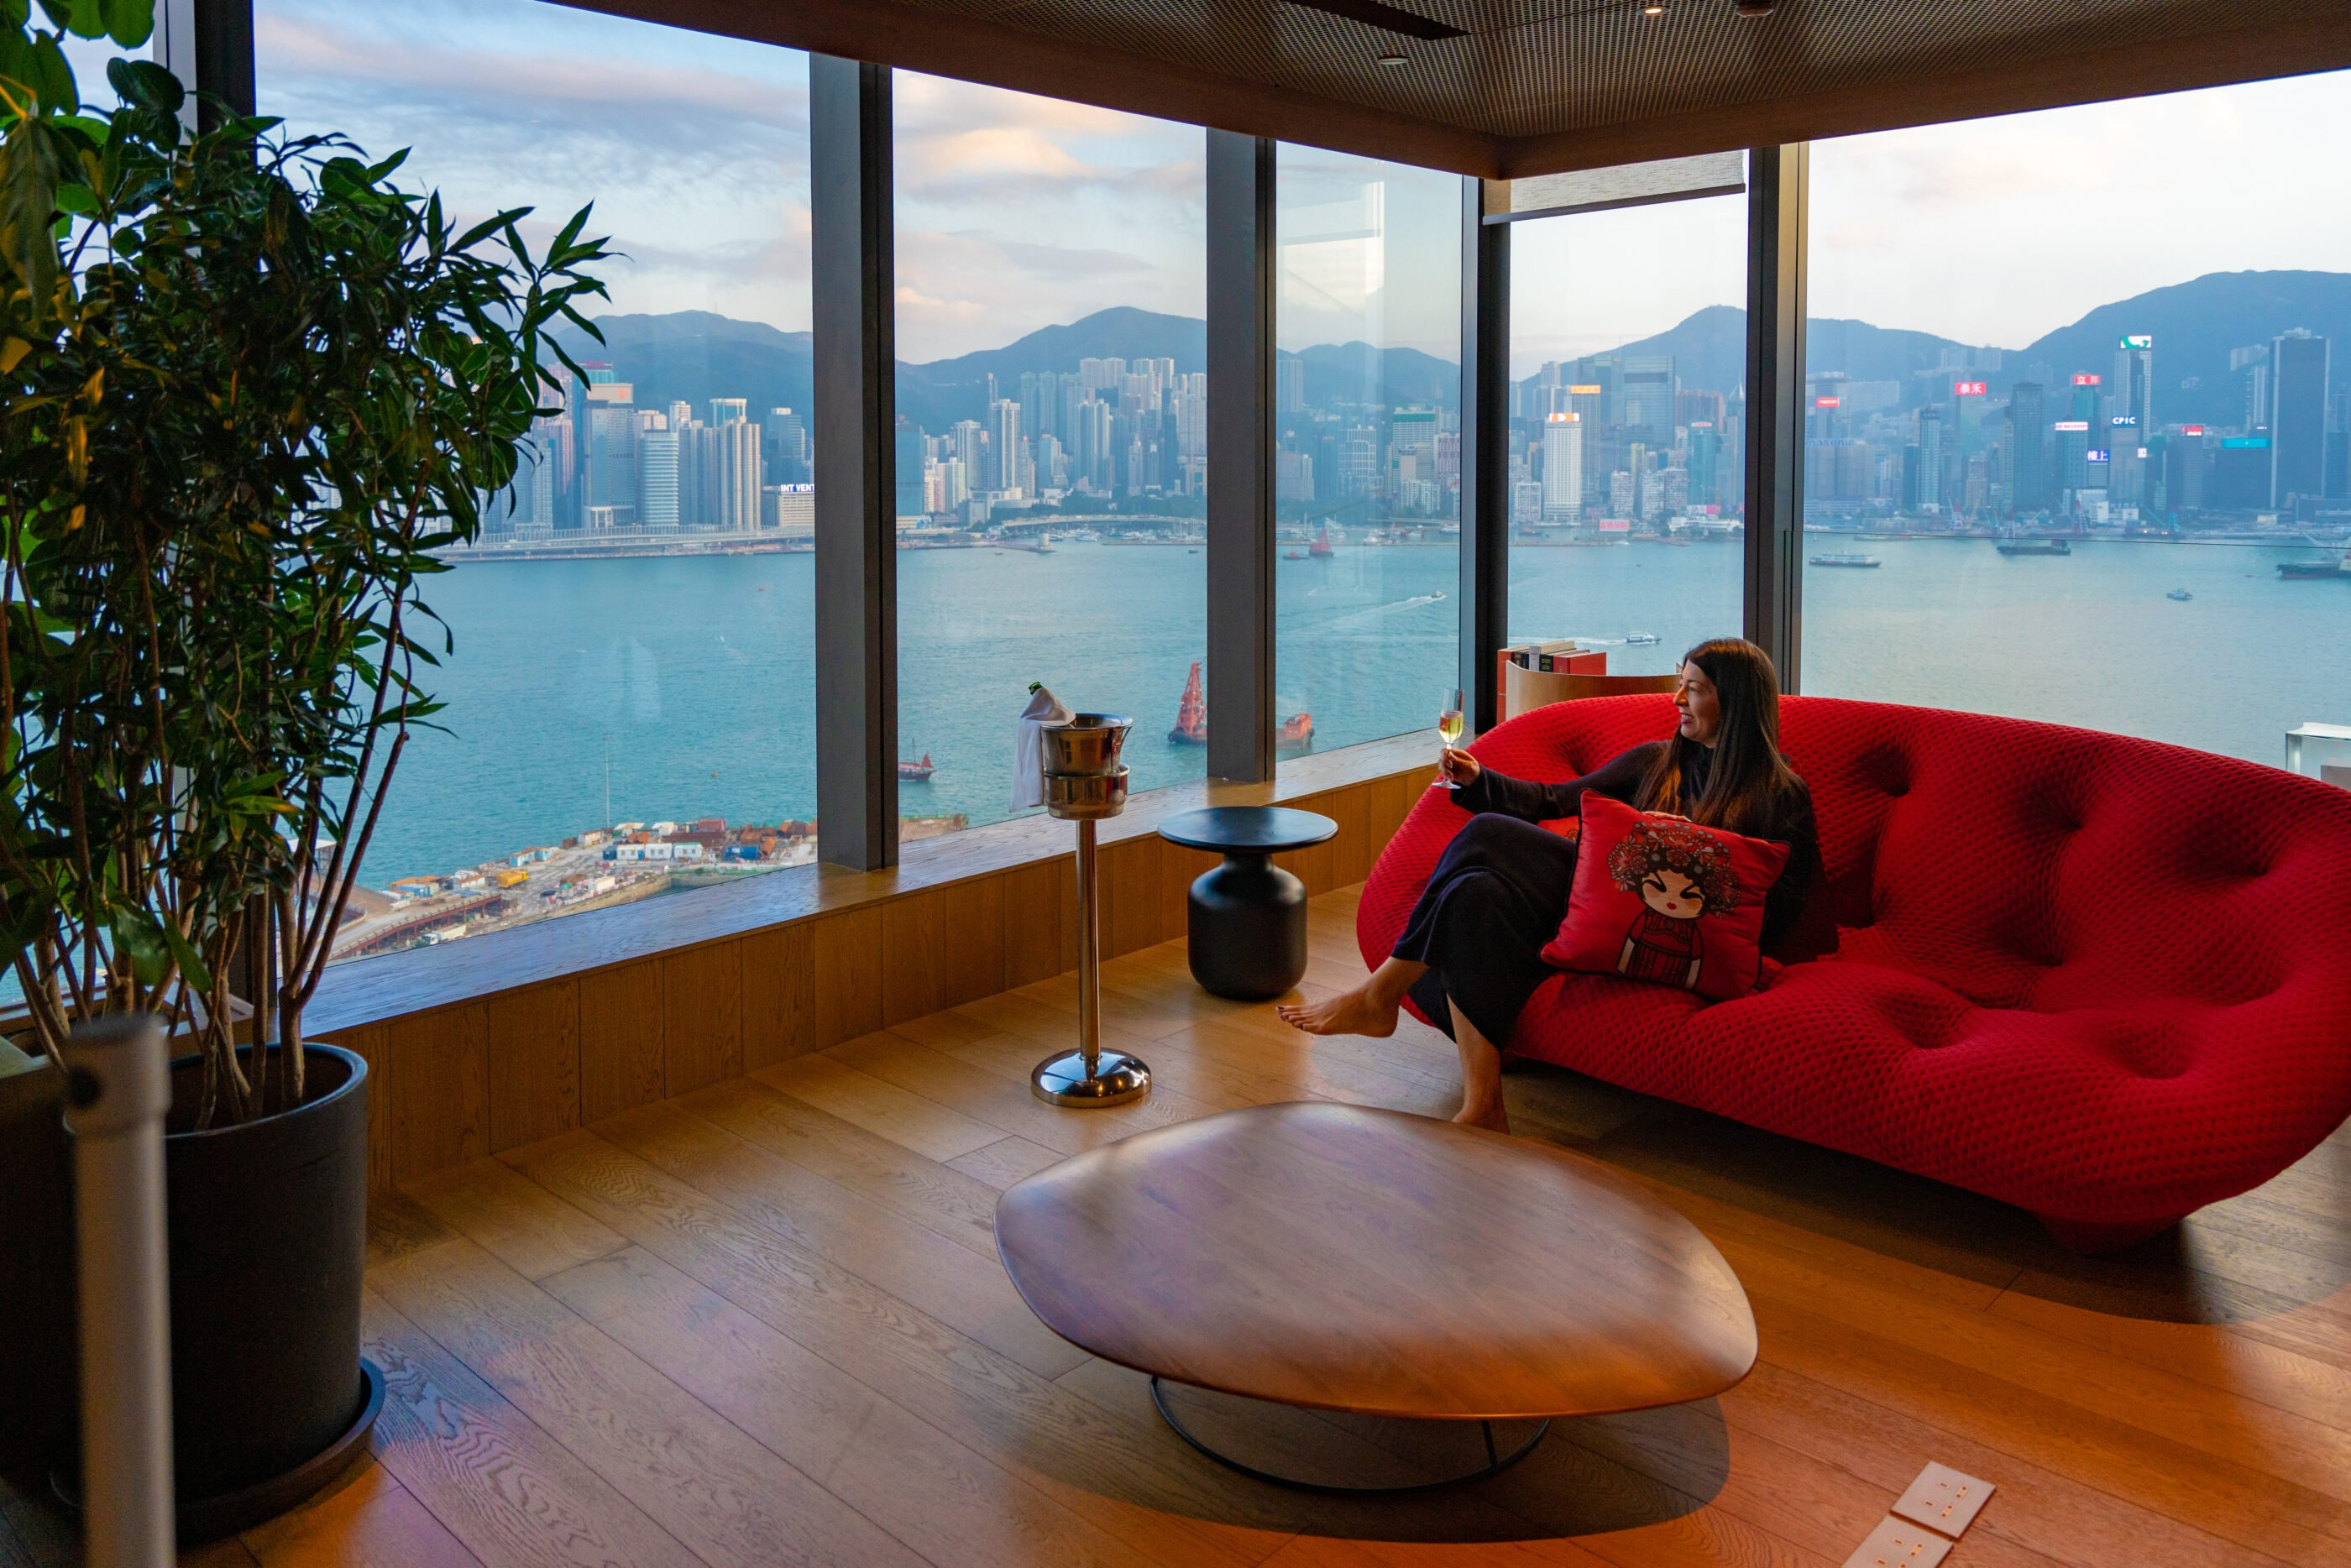 The Vivienne Tam suite at Hotel Icon, one of the best Hong Kong hotels.